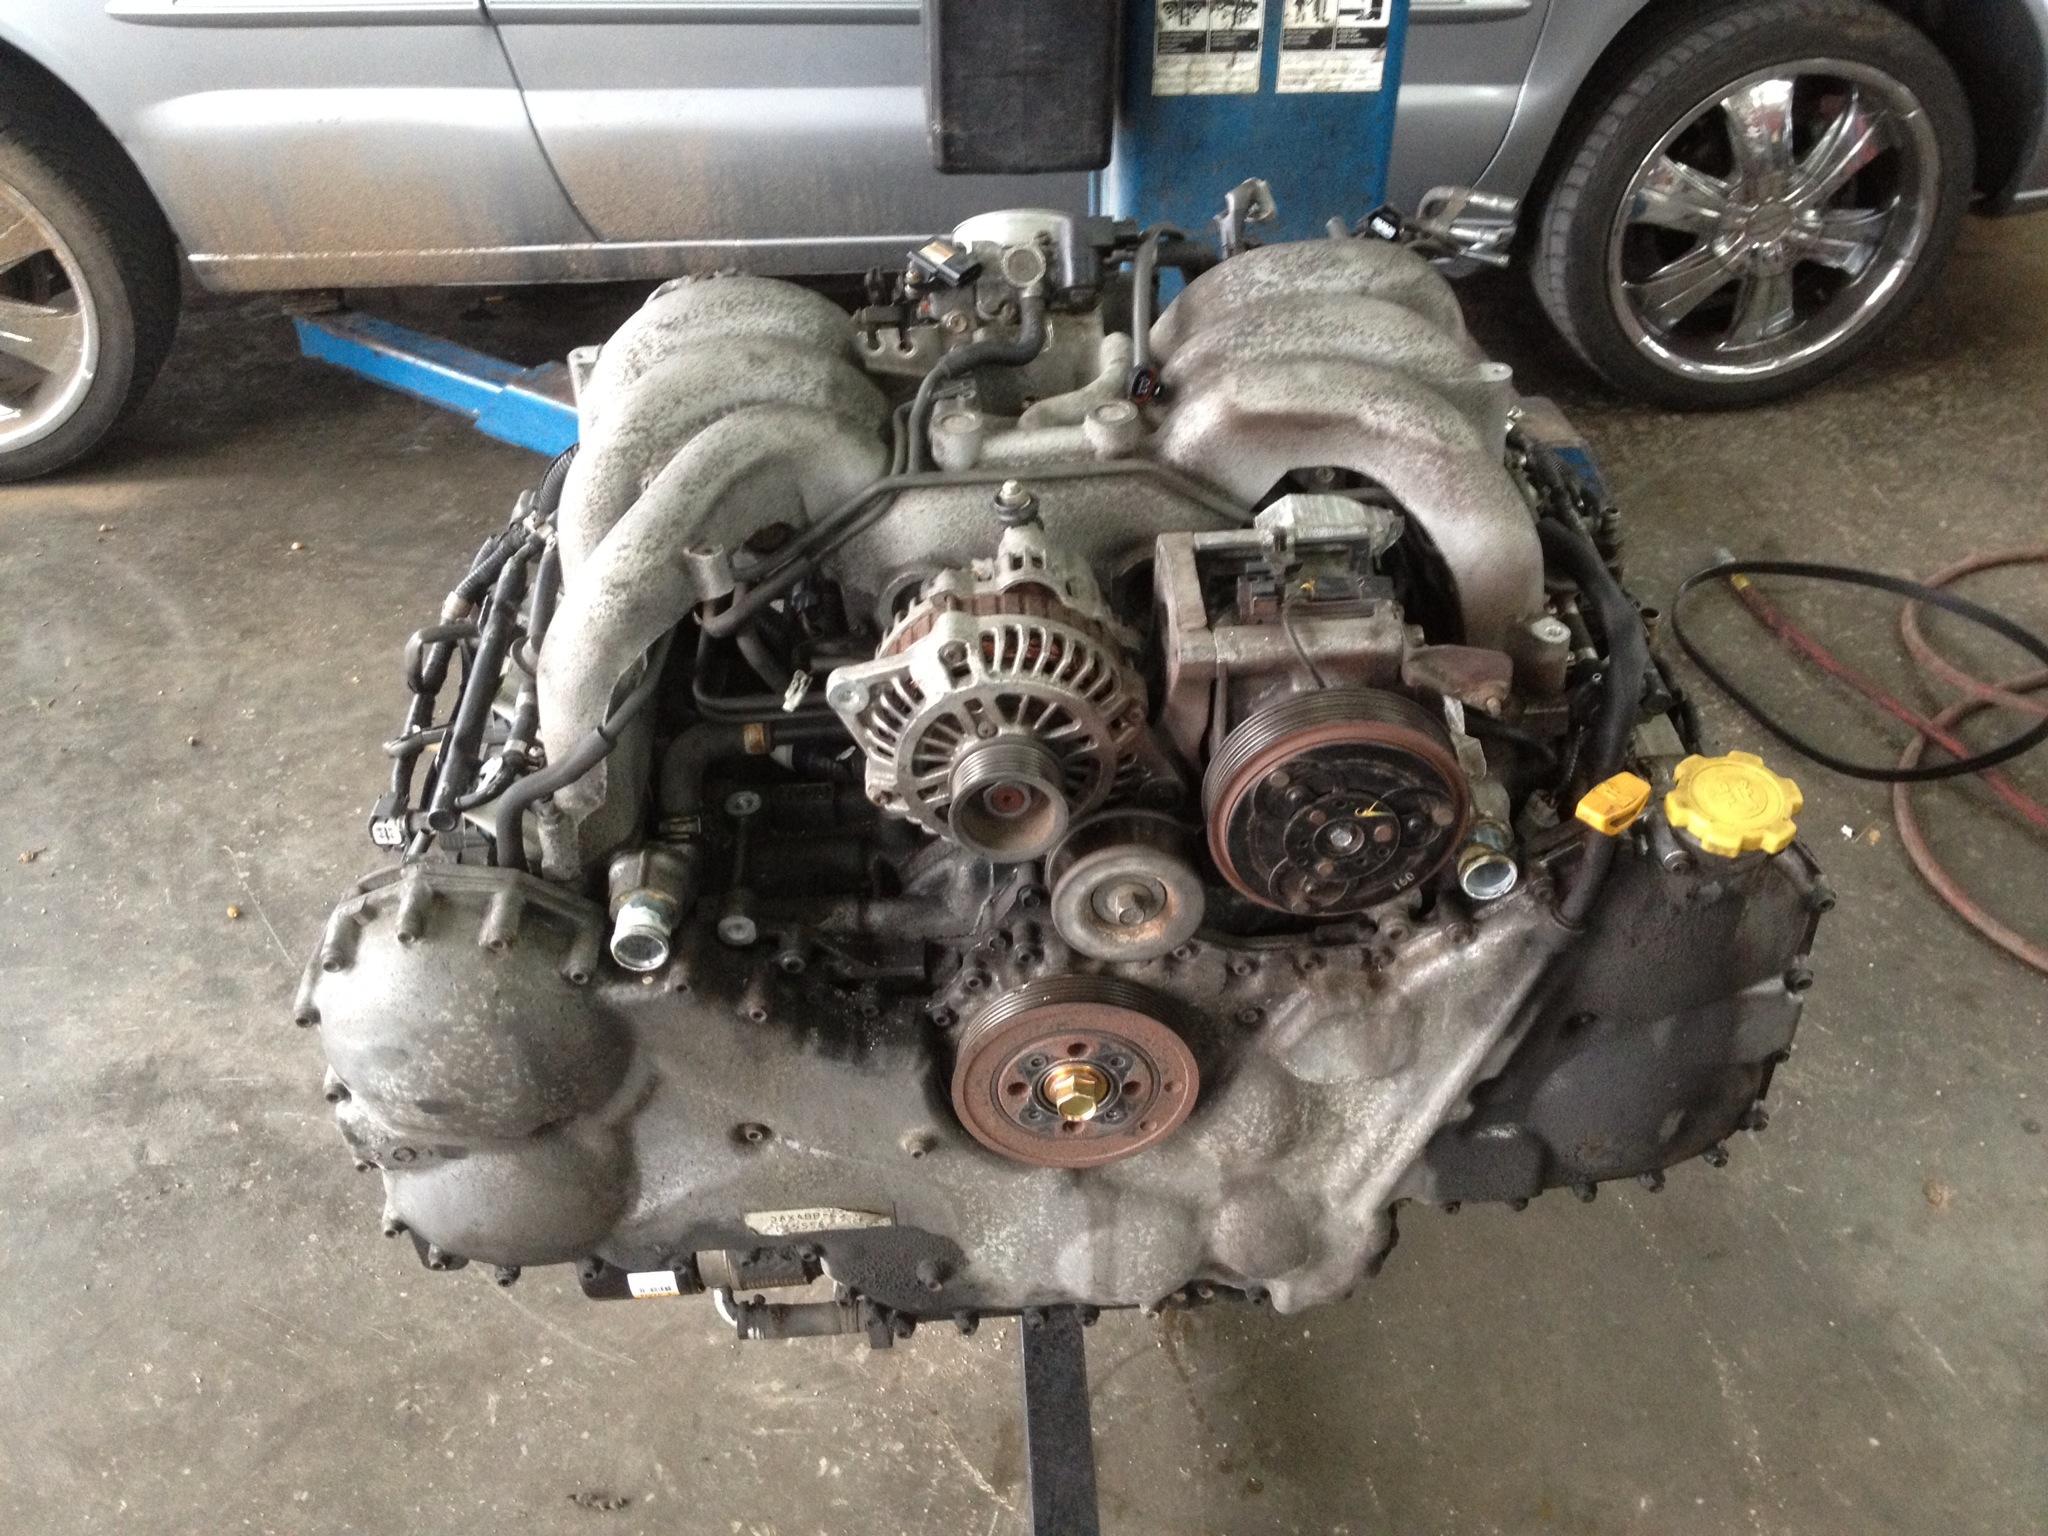 h6 engine problems need advice subaru outback subaru outback forums rh  subaruoutback org 2008 subaru outback engine diagram 2008 subaru outback  engine ...